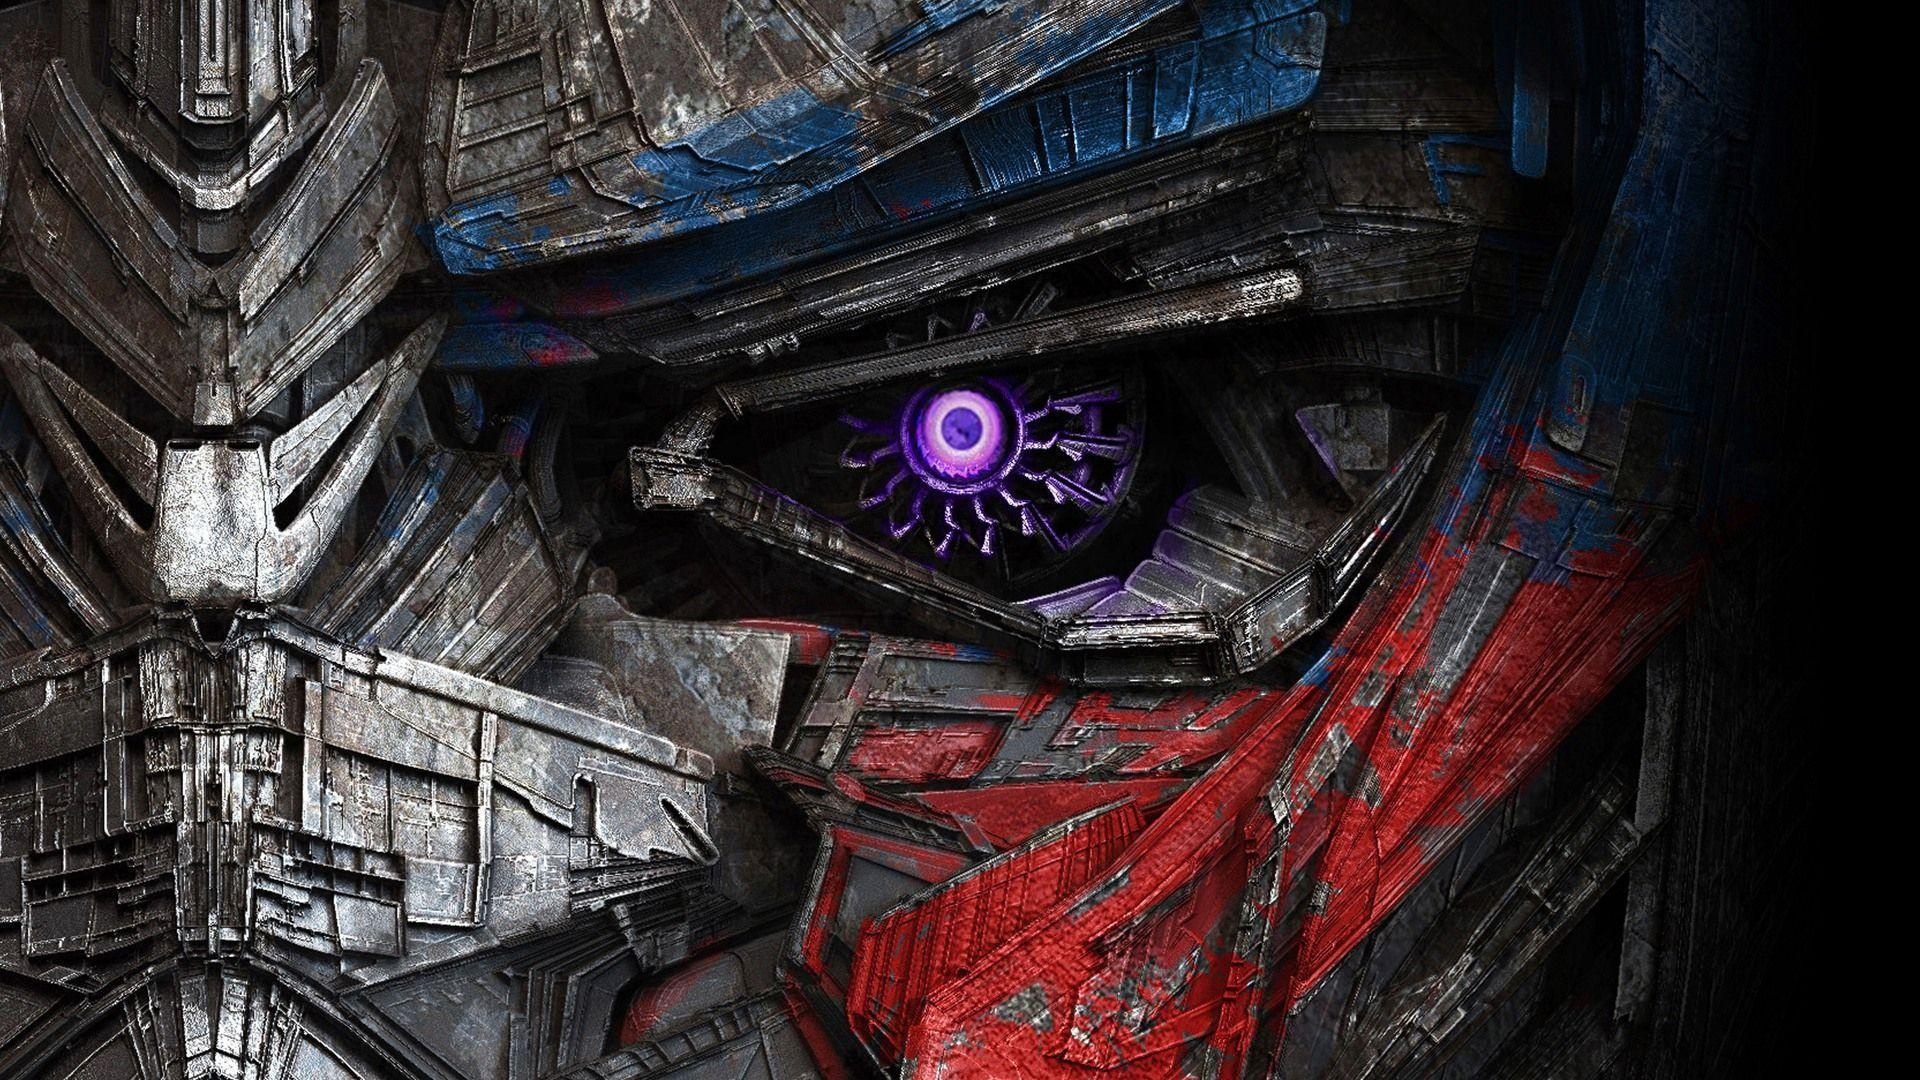 optimus prime 2017 wallpapers - wallpaper cave